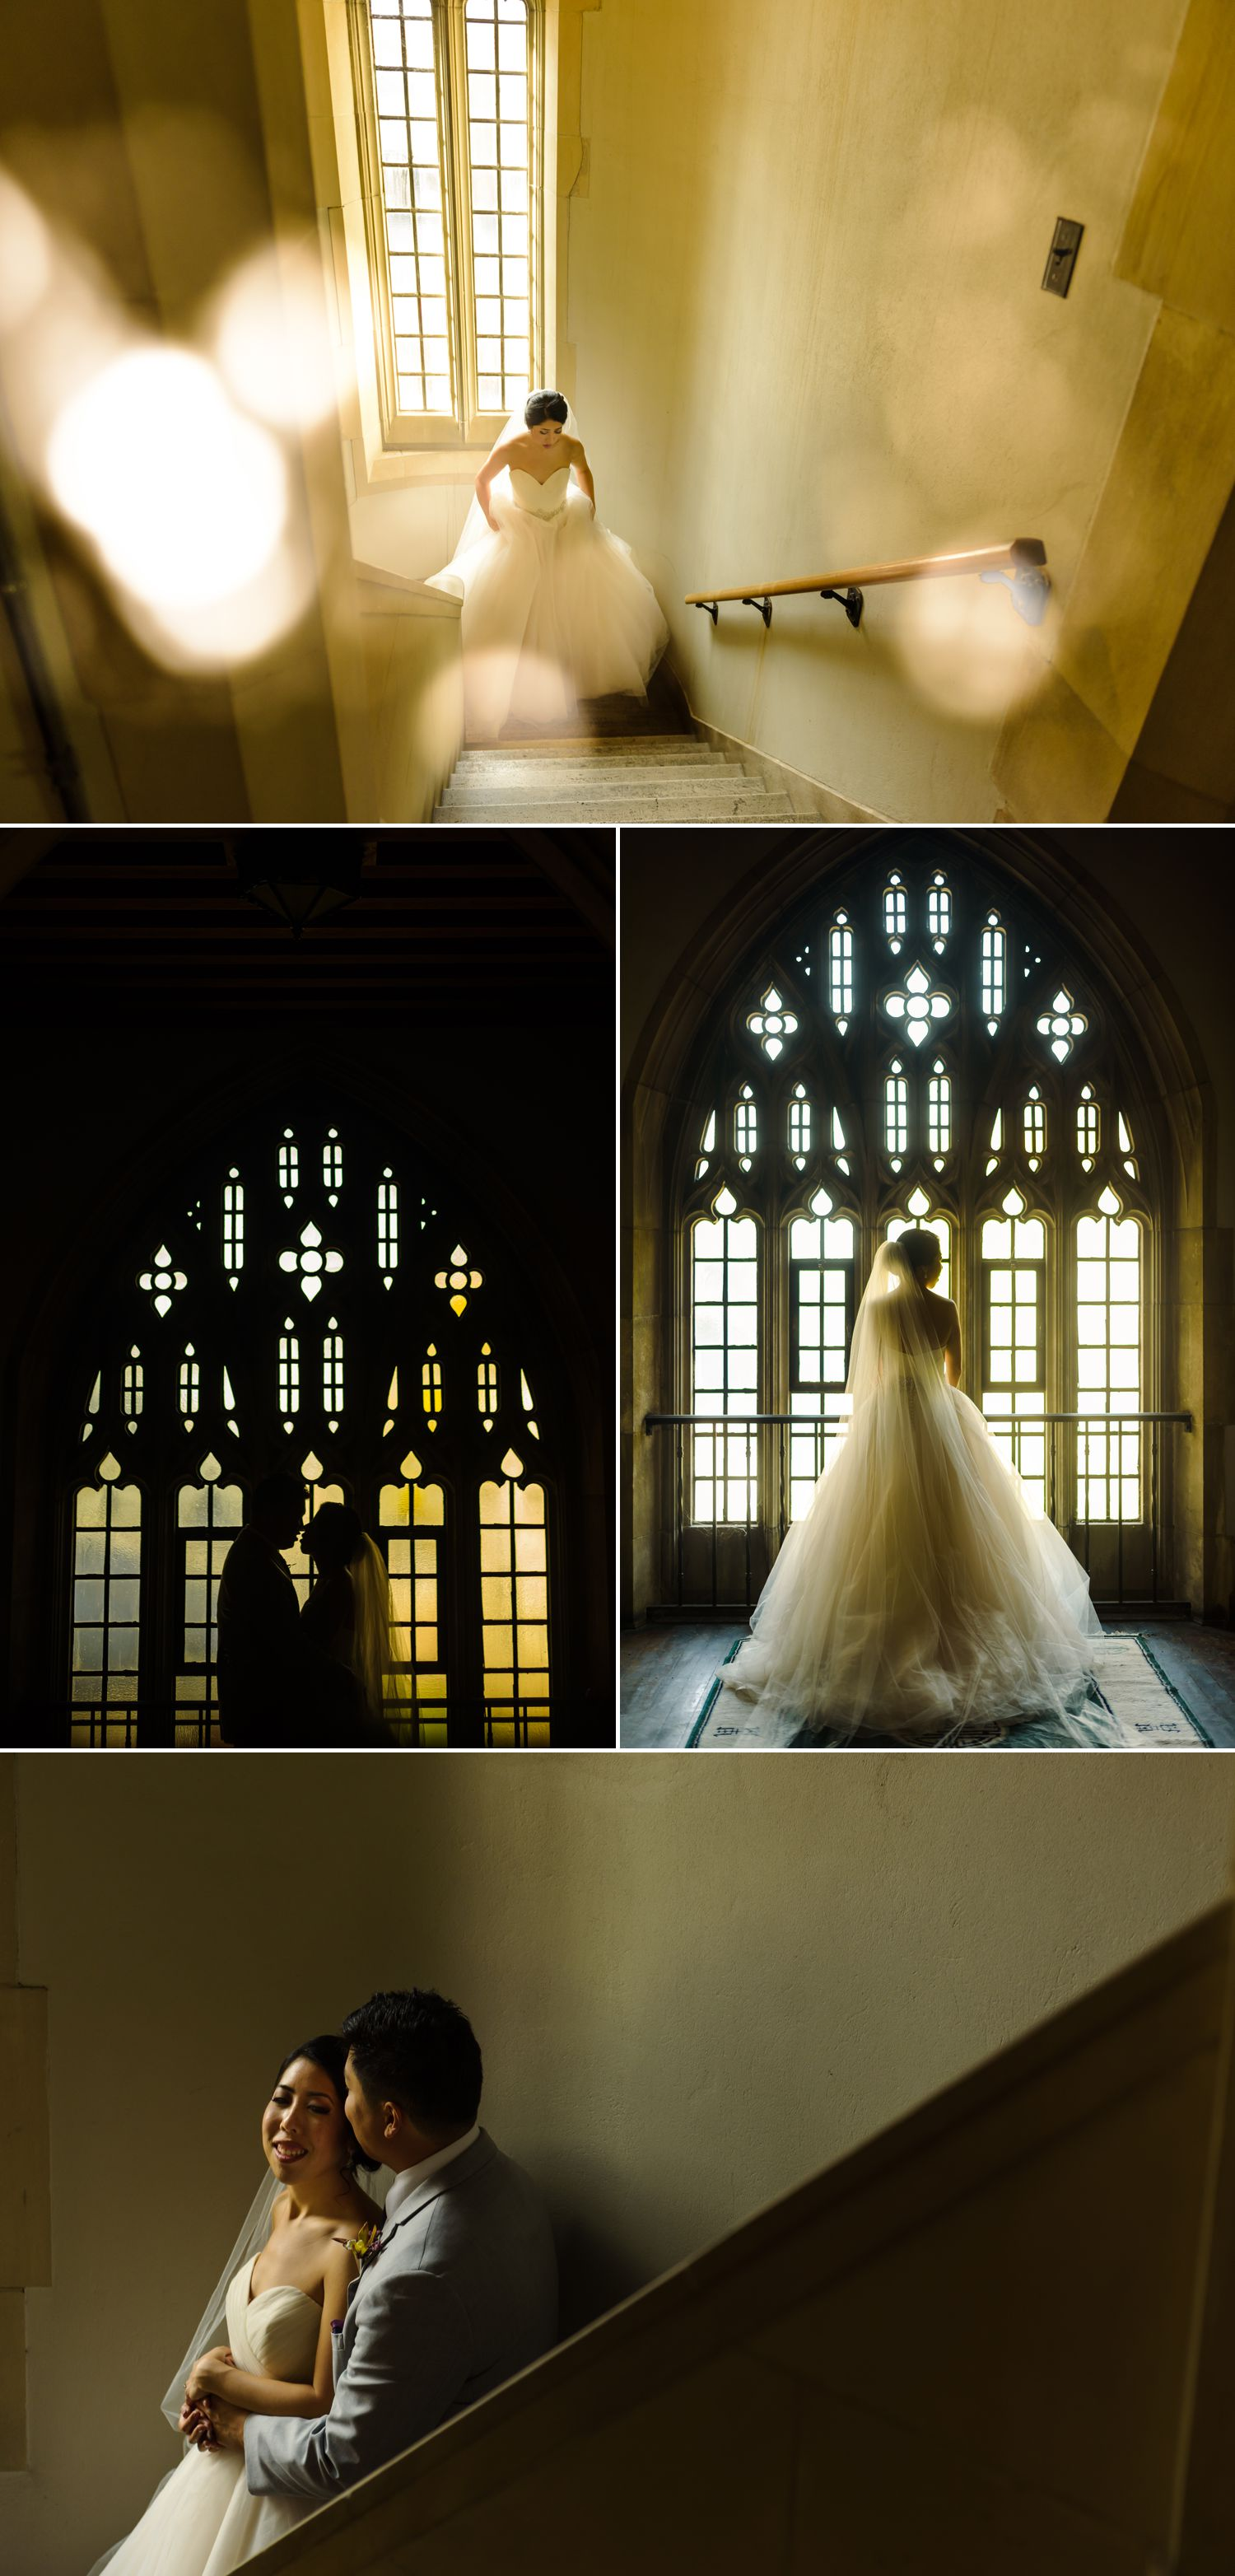 Portraits of the bride and groom after their wedding ceremony at The Knox Presbyterian Church in downtown Ottawa